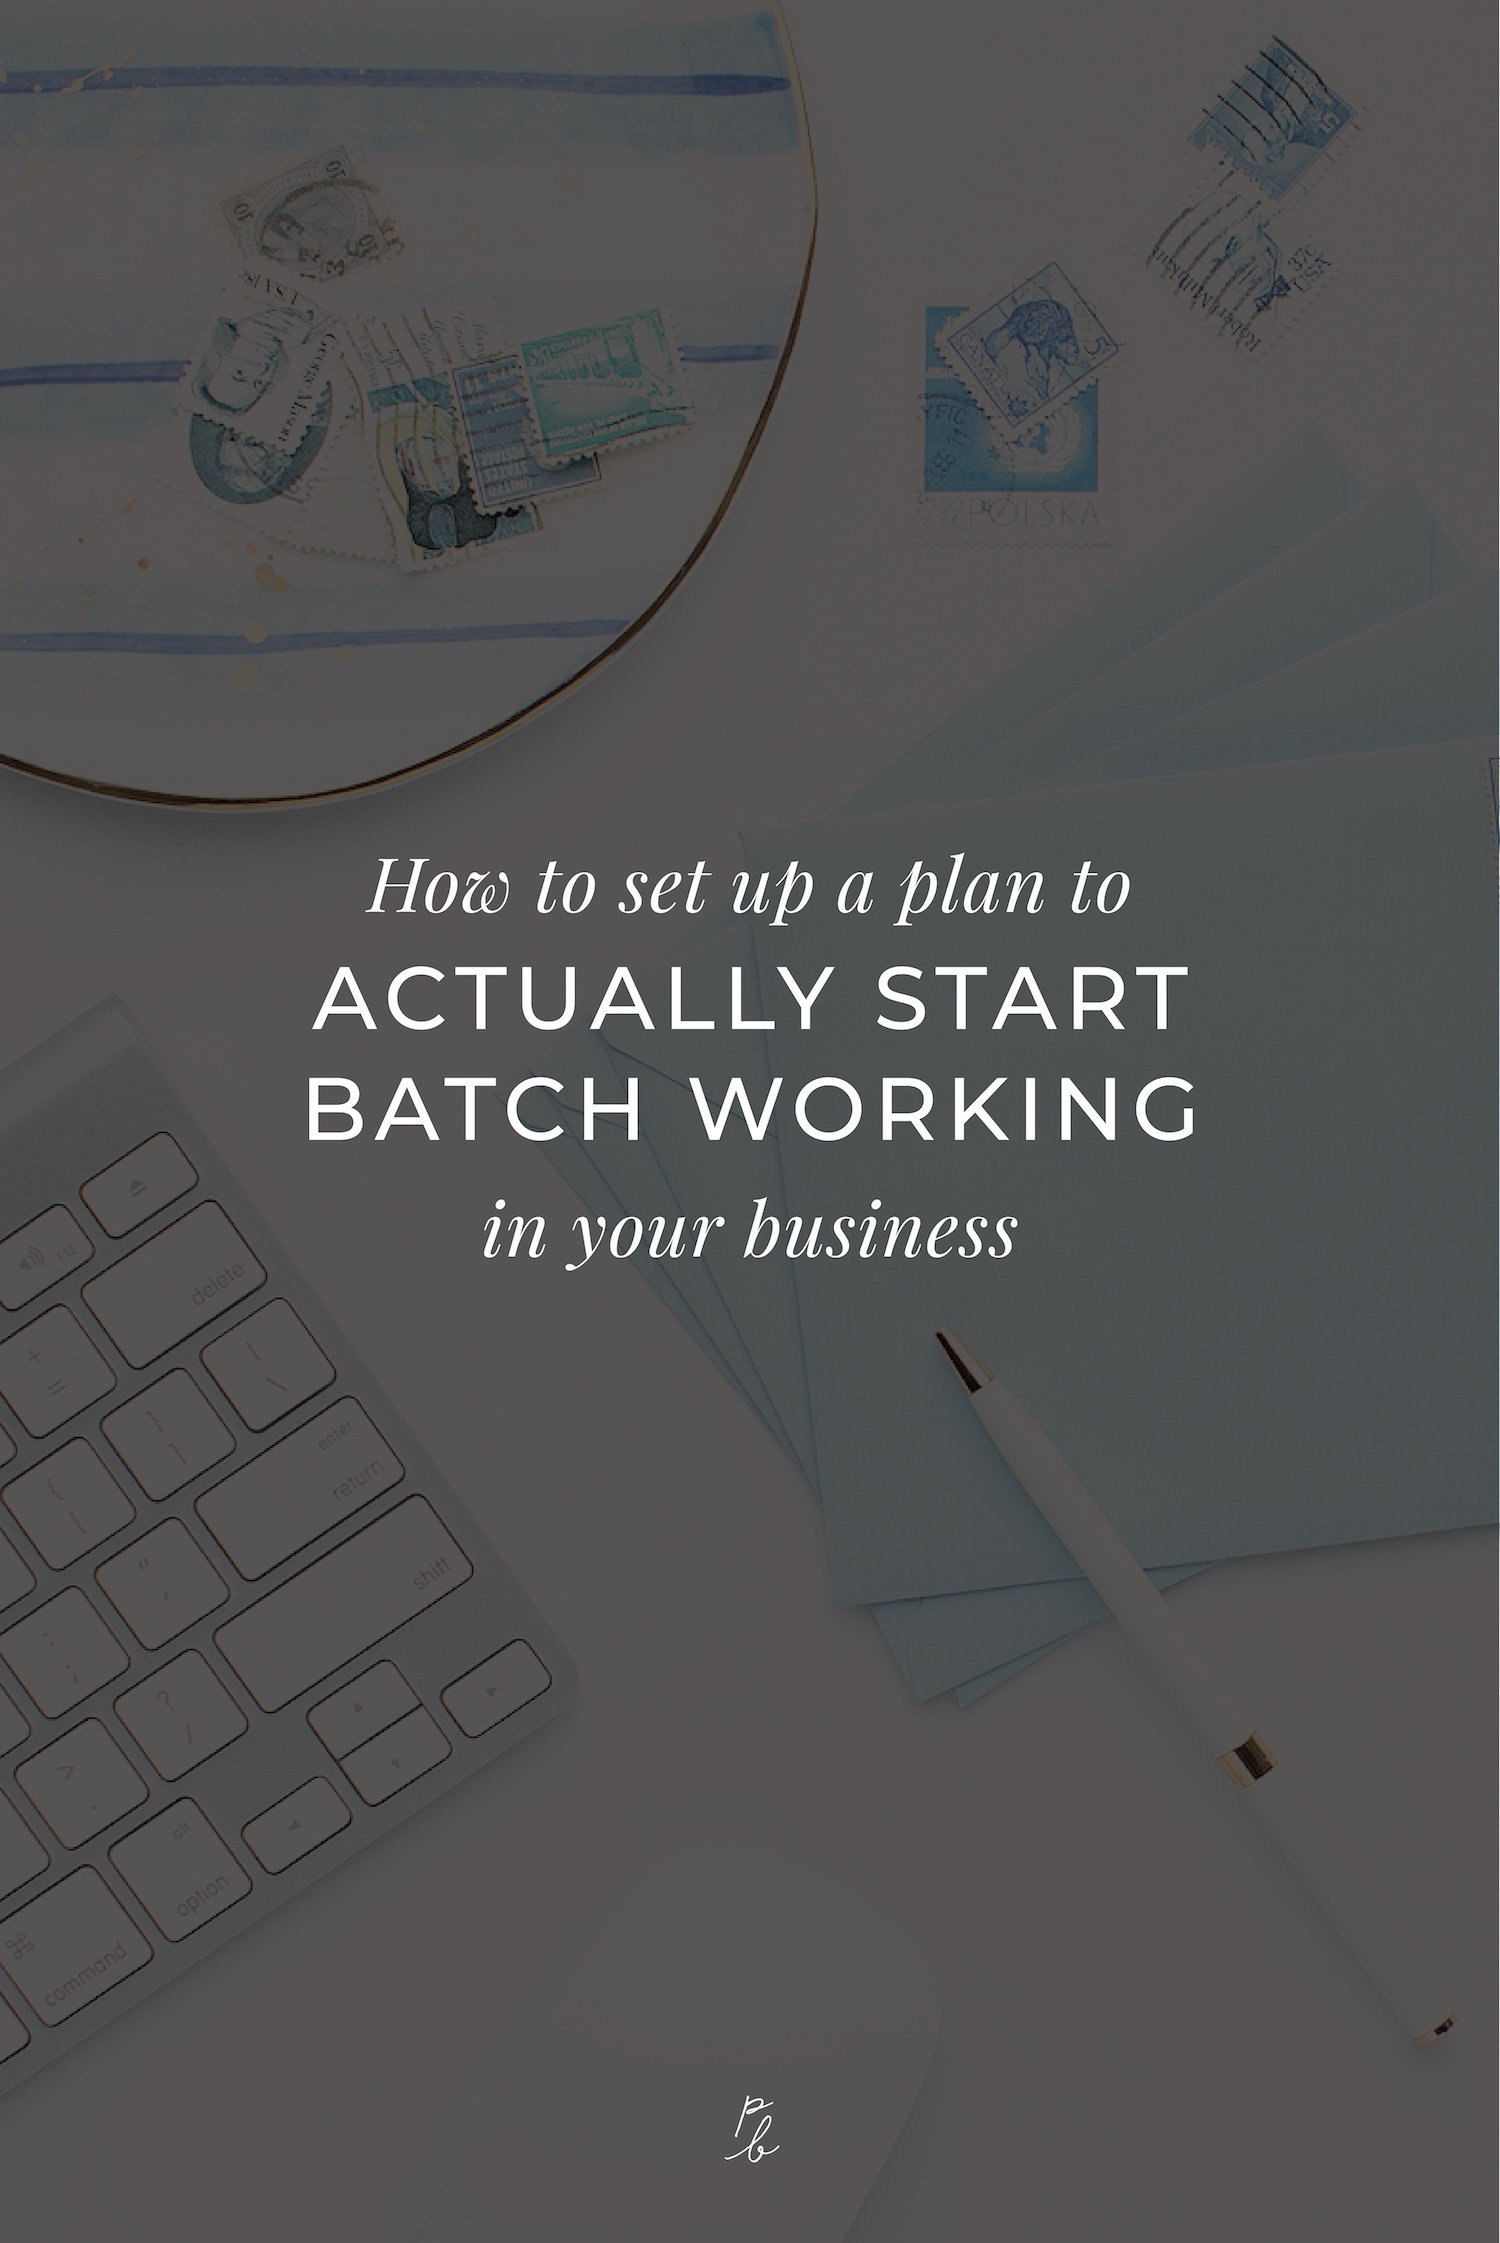 How to set up a plan to actually start batch working in your business.jpeg